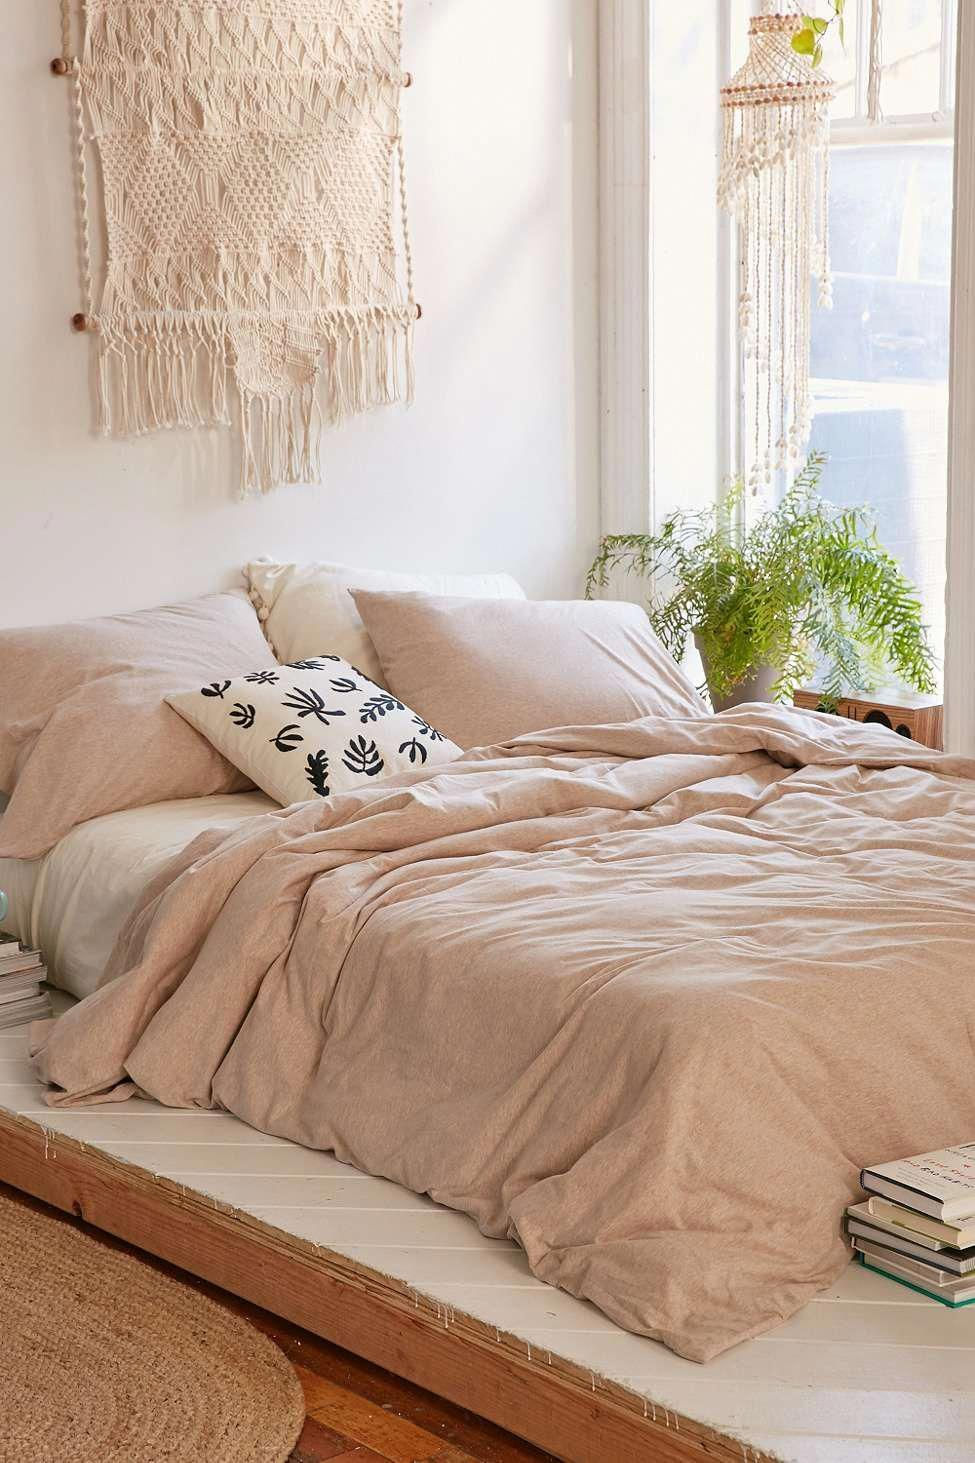 What decor over the bed? | Urban outfitters bedroom ...